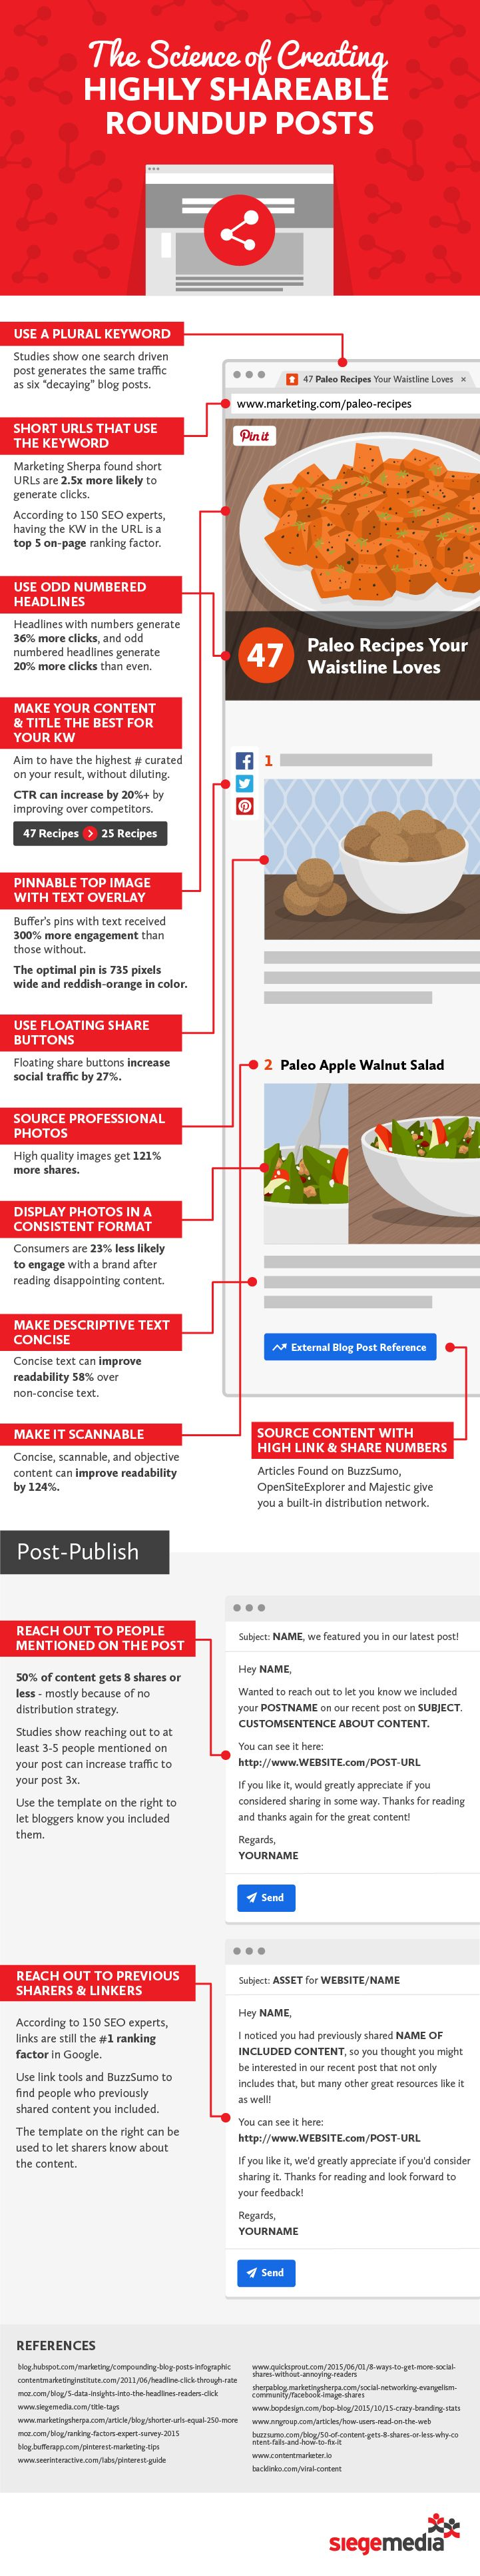 How to format your blog post to get more social media share - Find This Pin And More On 3 Tips To Improve Your Blog Post Writing By Johnygt